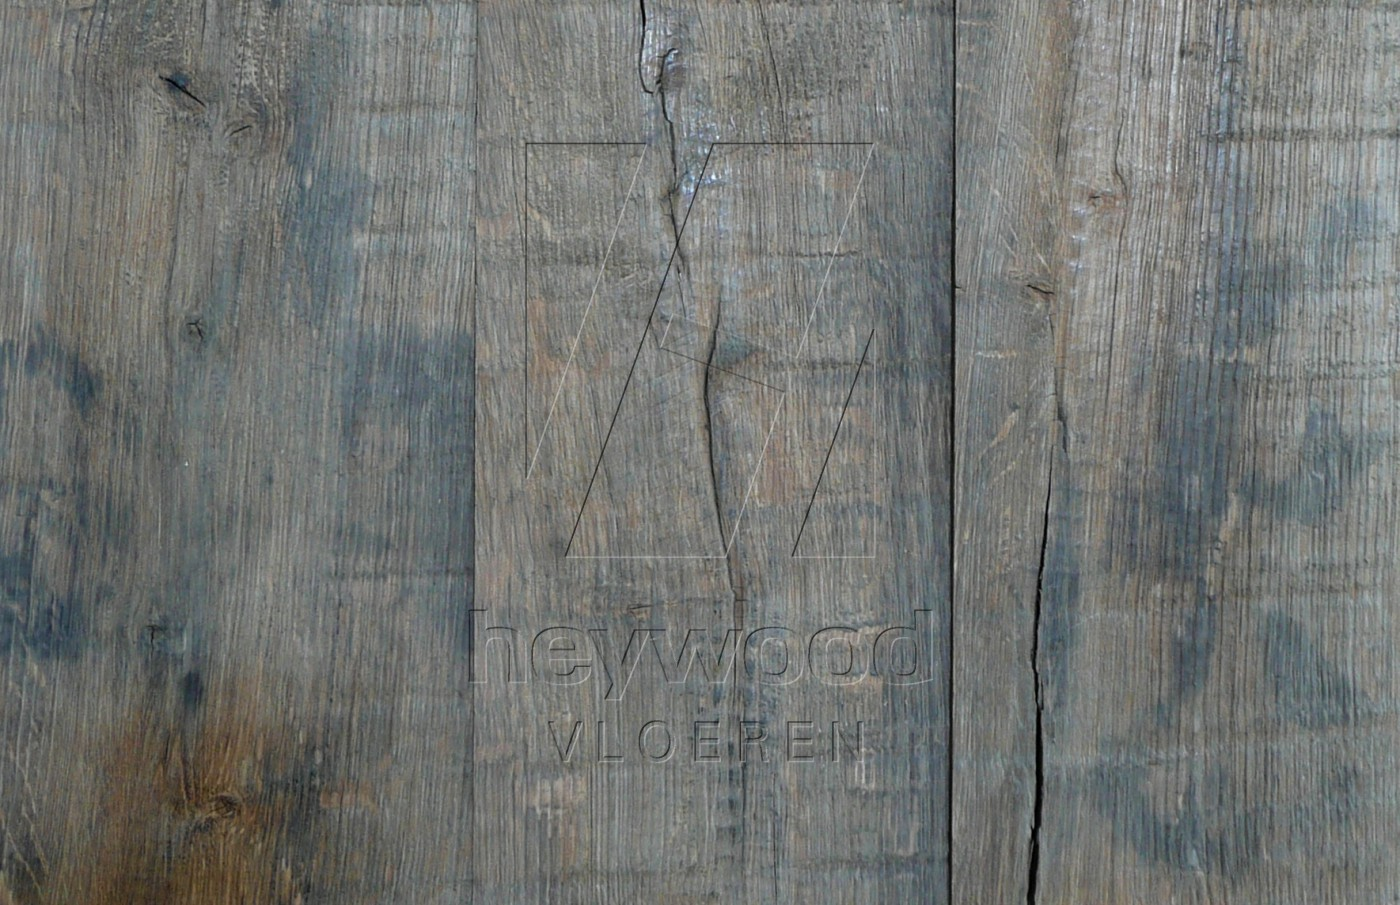 Bordeaux (some close-up reference boards) in Plank OUTSIDES (authentic textured patina surface) of Old Reclaimed Wood